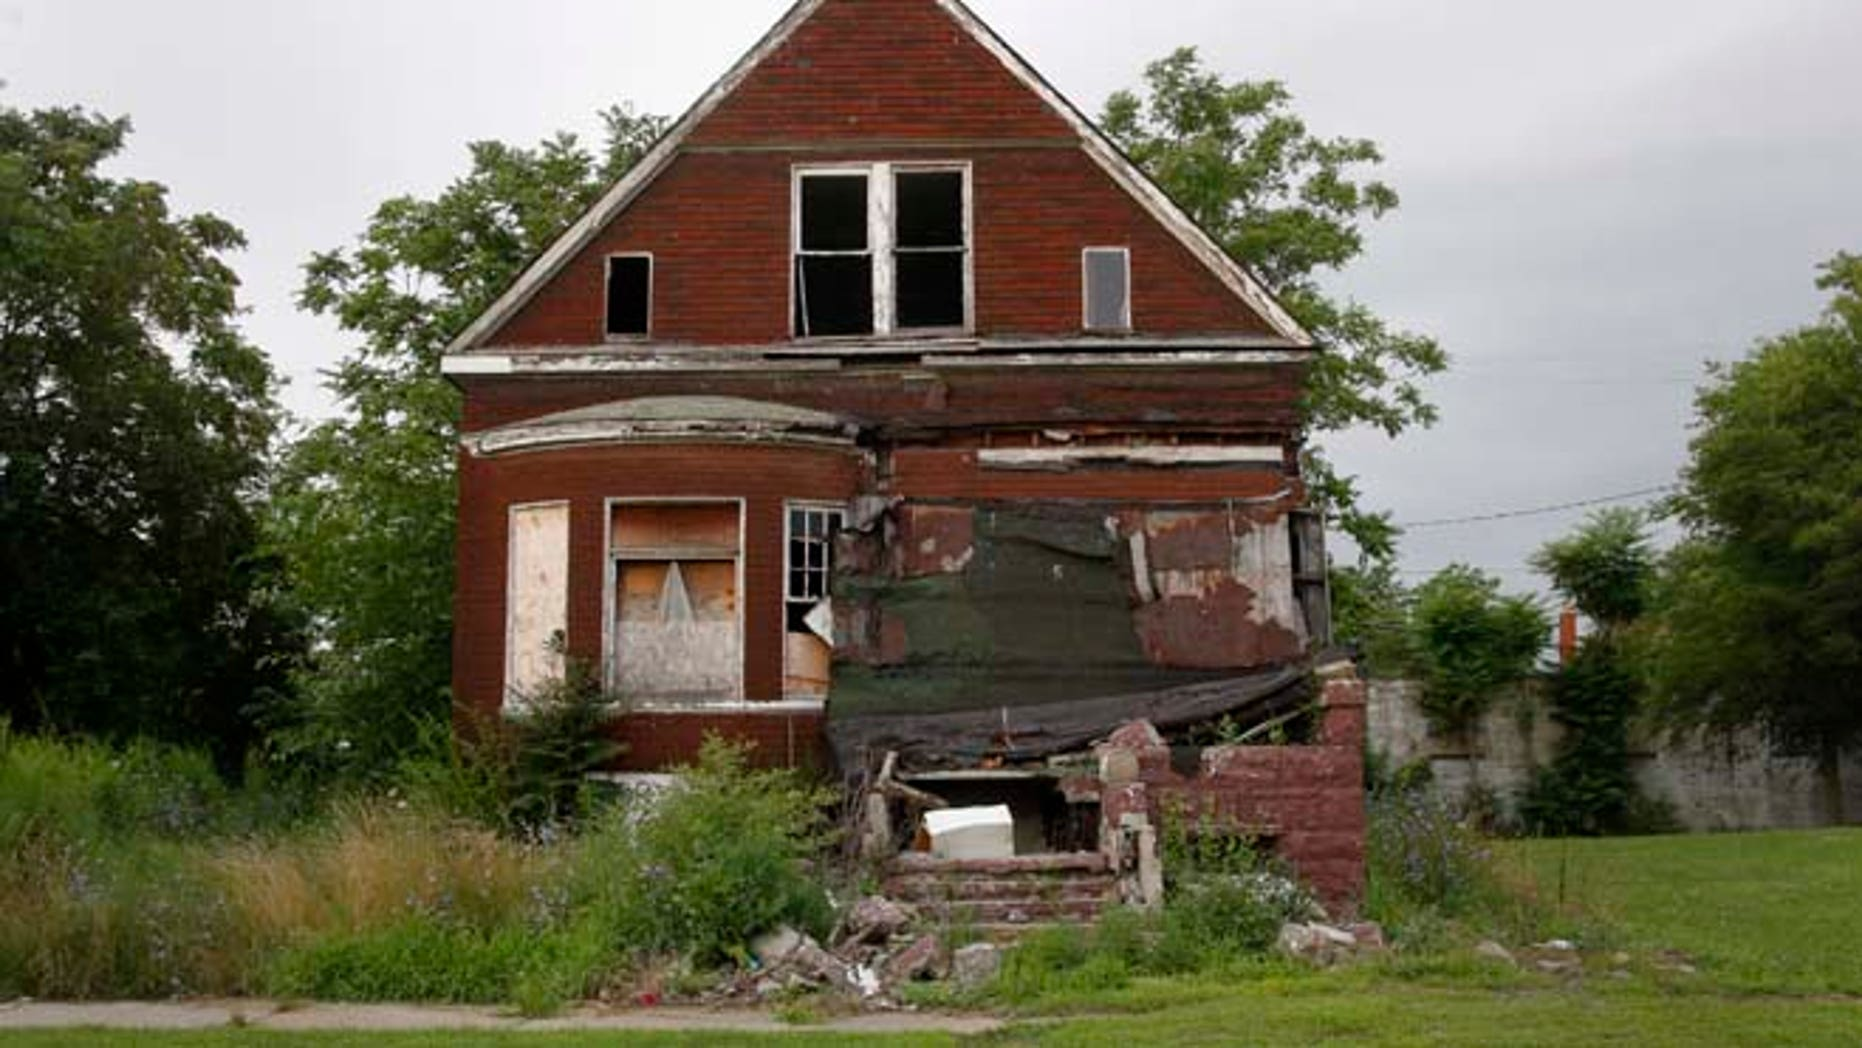 In this July 23, 2013 file photo, a vacant blighted home is seen on a street that was once lined with houses in Detroit, Michigan.